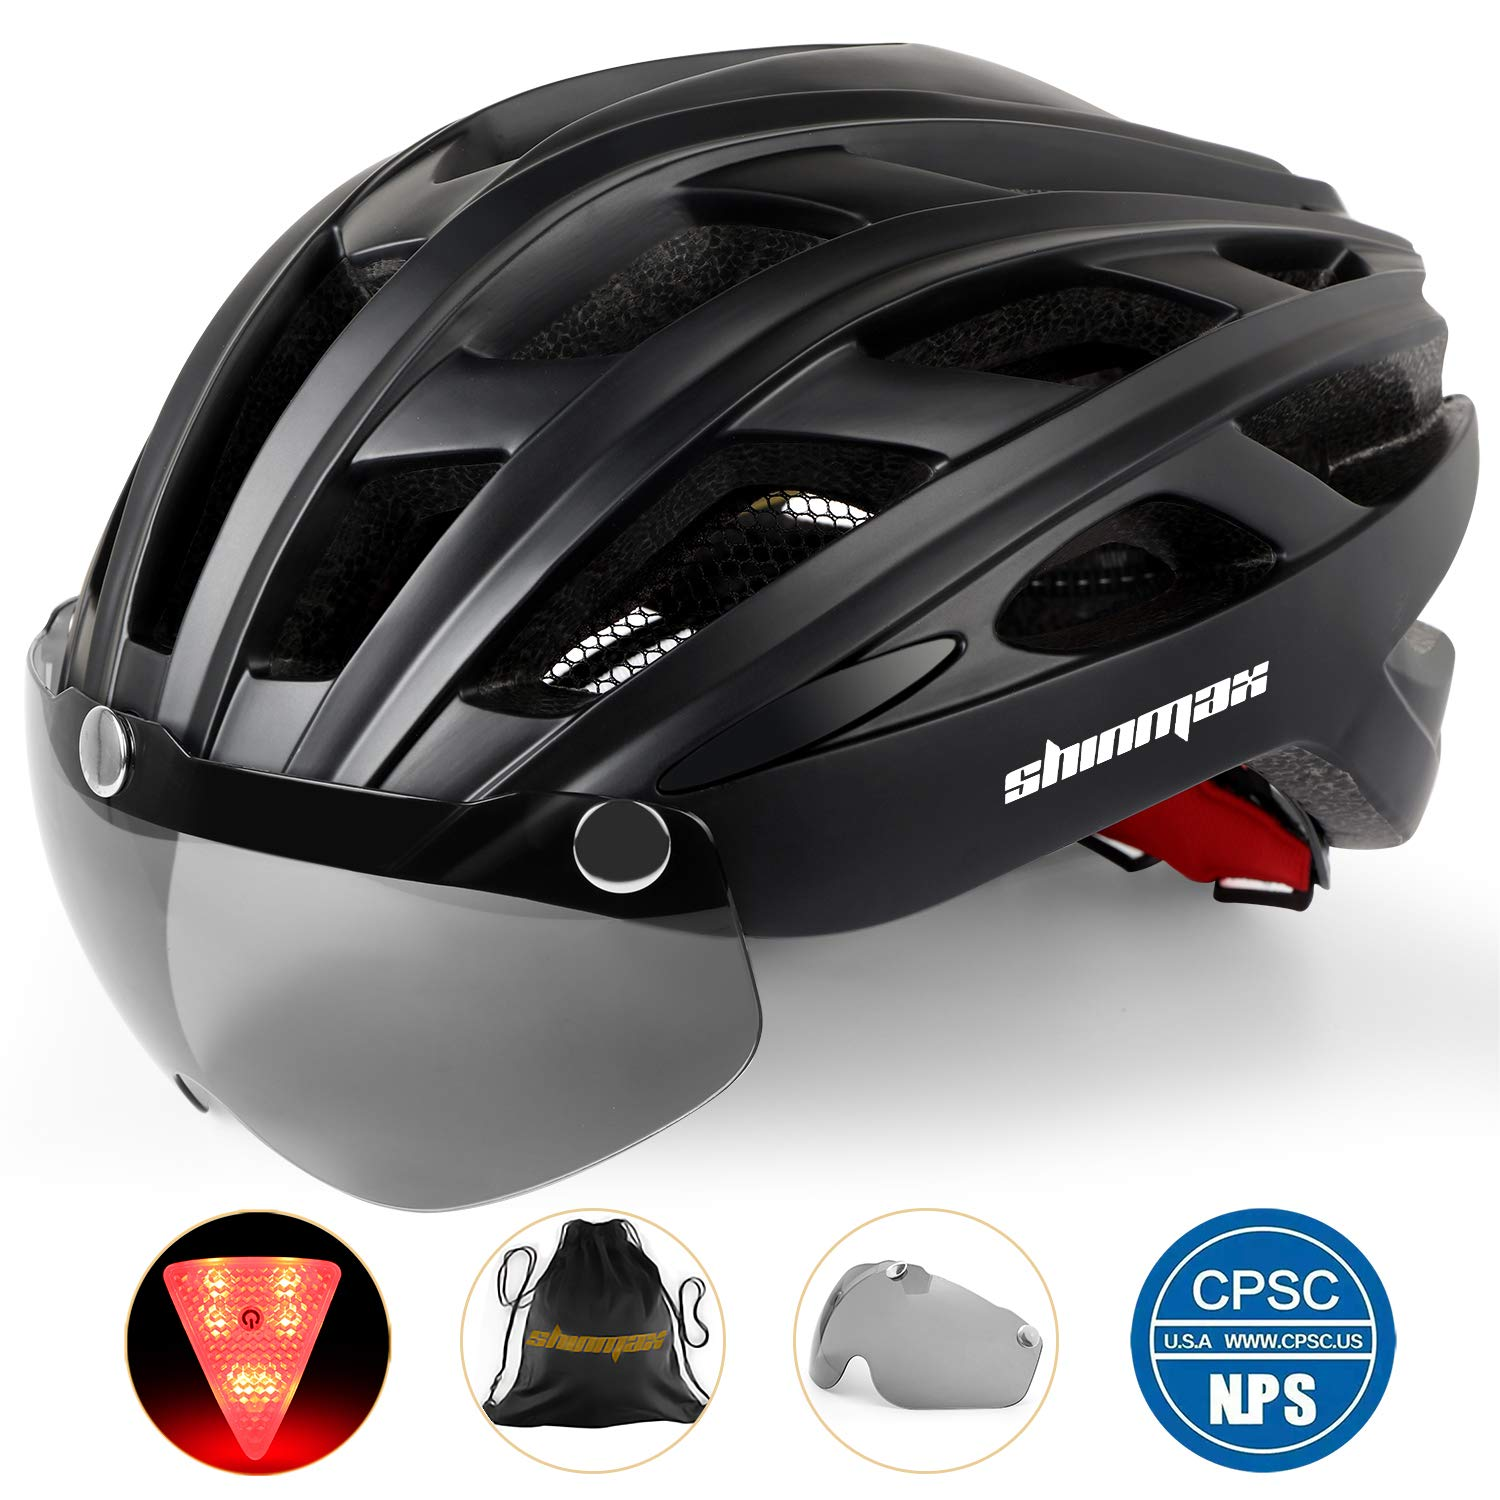 Bike Helmet, Shinmax Cycling Helmet CPSC Safety Standard Adjustable Bicycle/Climbing Helmet with Magnetic Visor&LED Safety Back Light for Adult Youth Men/Women Mountain&Road by Basecamp